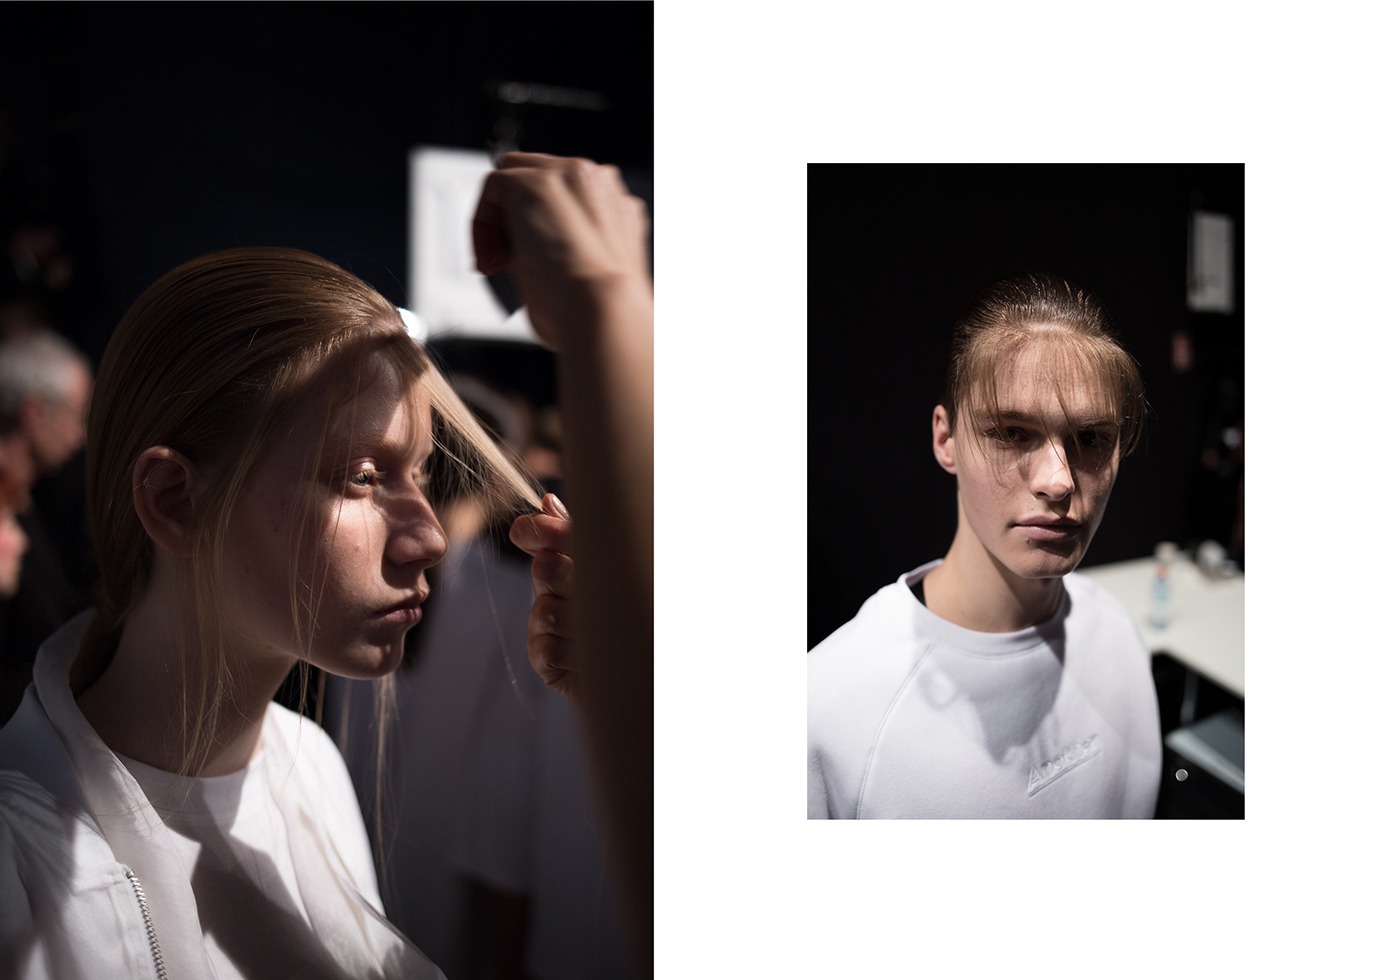 Backstage Photography at ODEUR - MBFW Berlin 2016